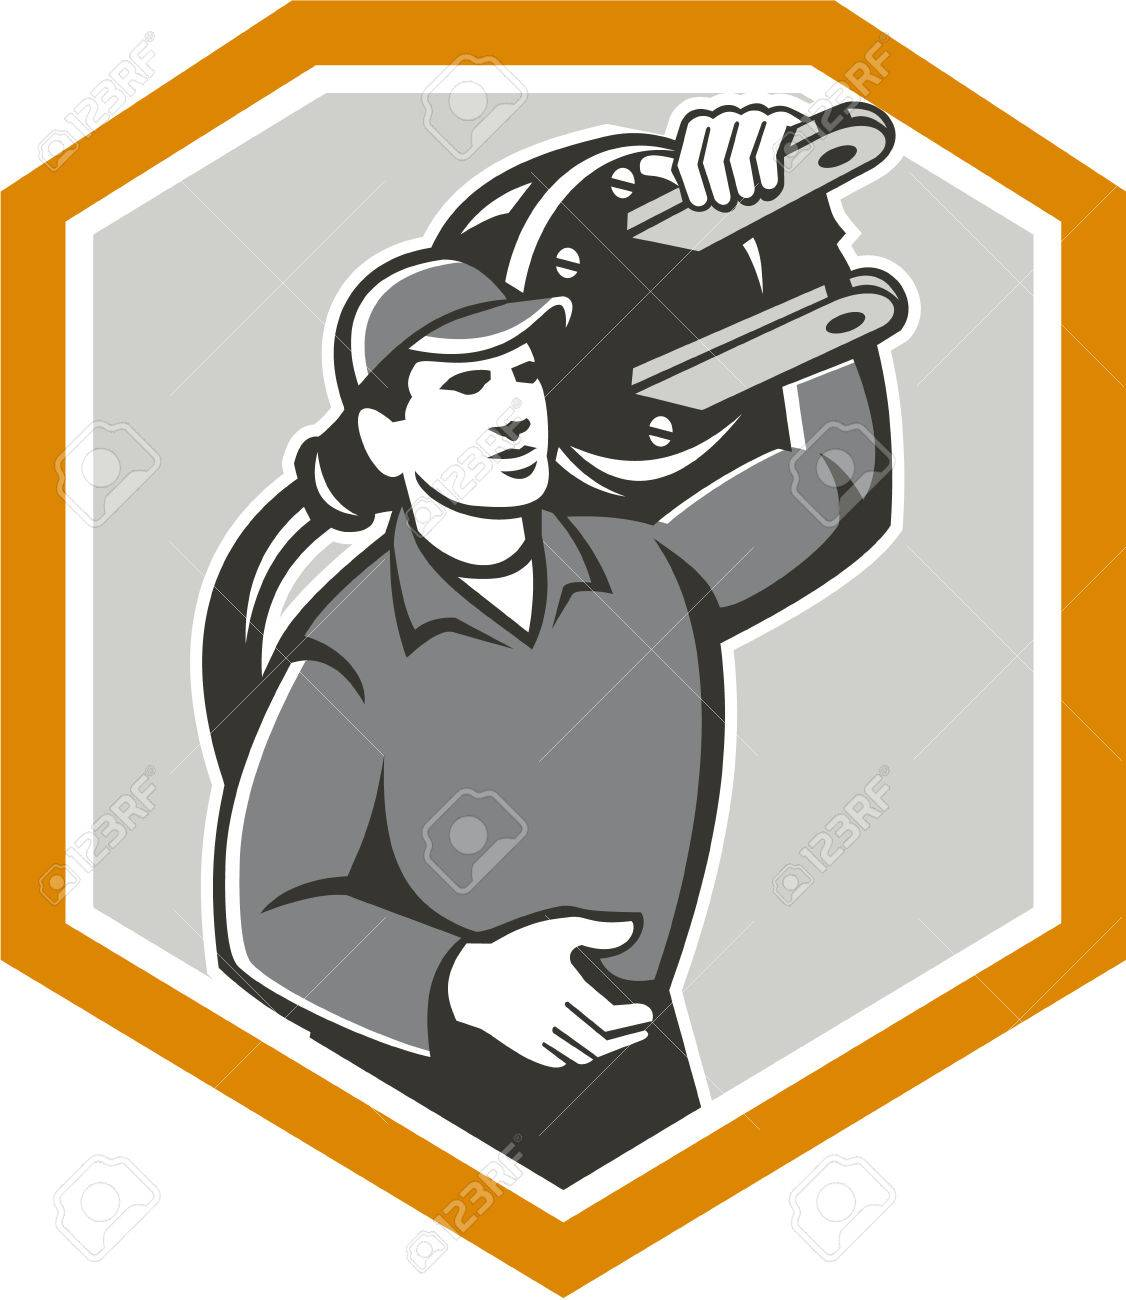 Illustration Of A Electrician Worker With Electric Plug Carrying On Shoulder Facing Front Set Inside Shield